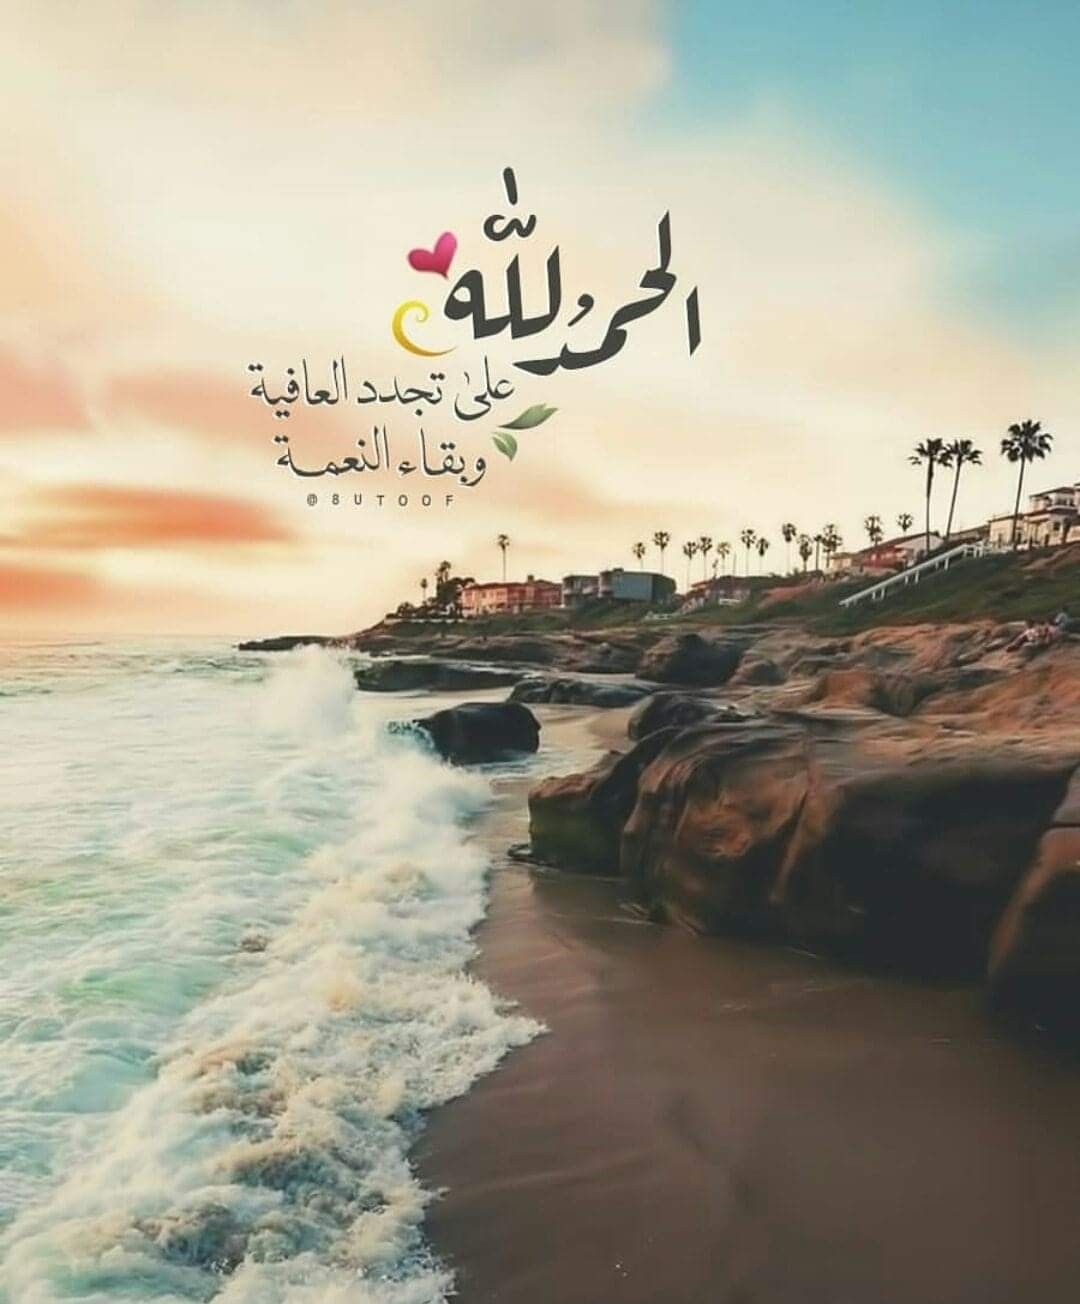 Pin By Amaal Ahmad On بذكرك اللهم Islamic Pictures Islamic Quotes Friday Messages